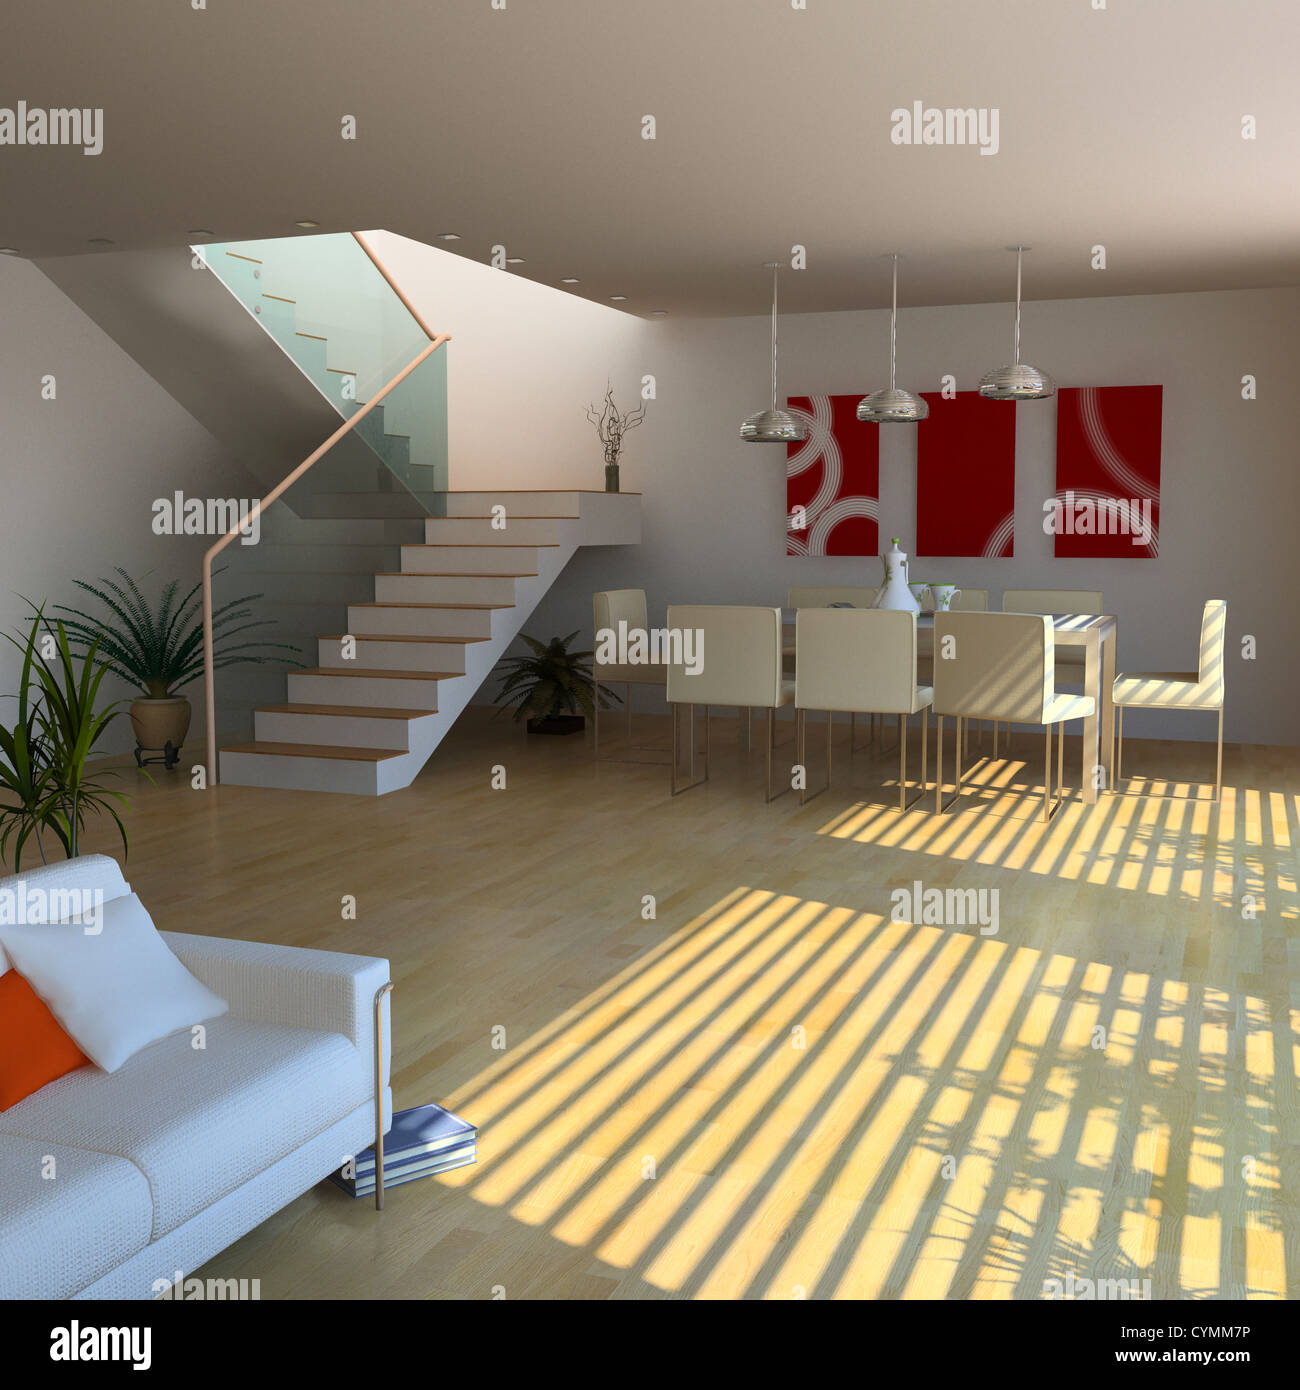 Design intérieur moderne(3D Rendering) Photo Stock